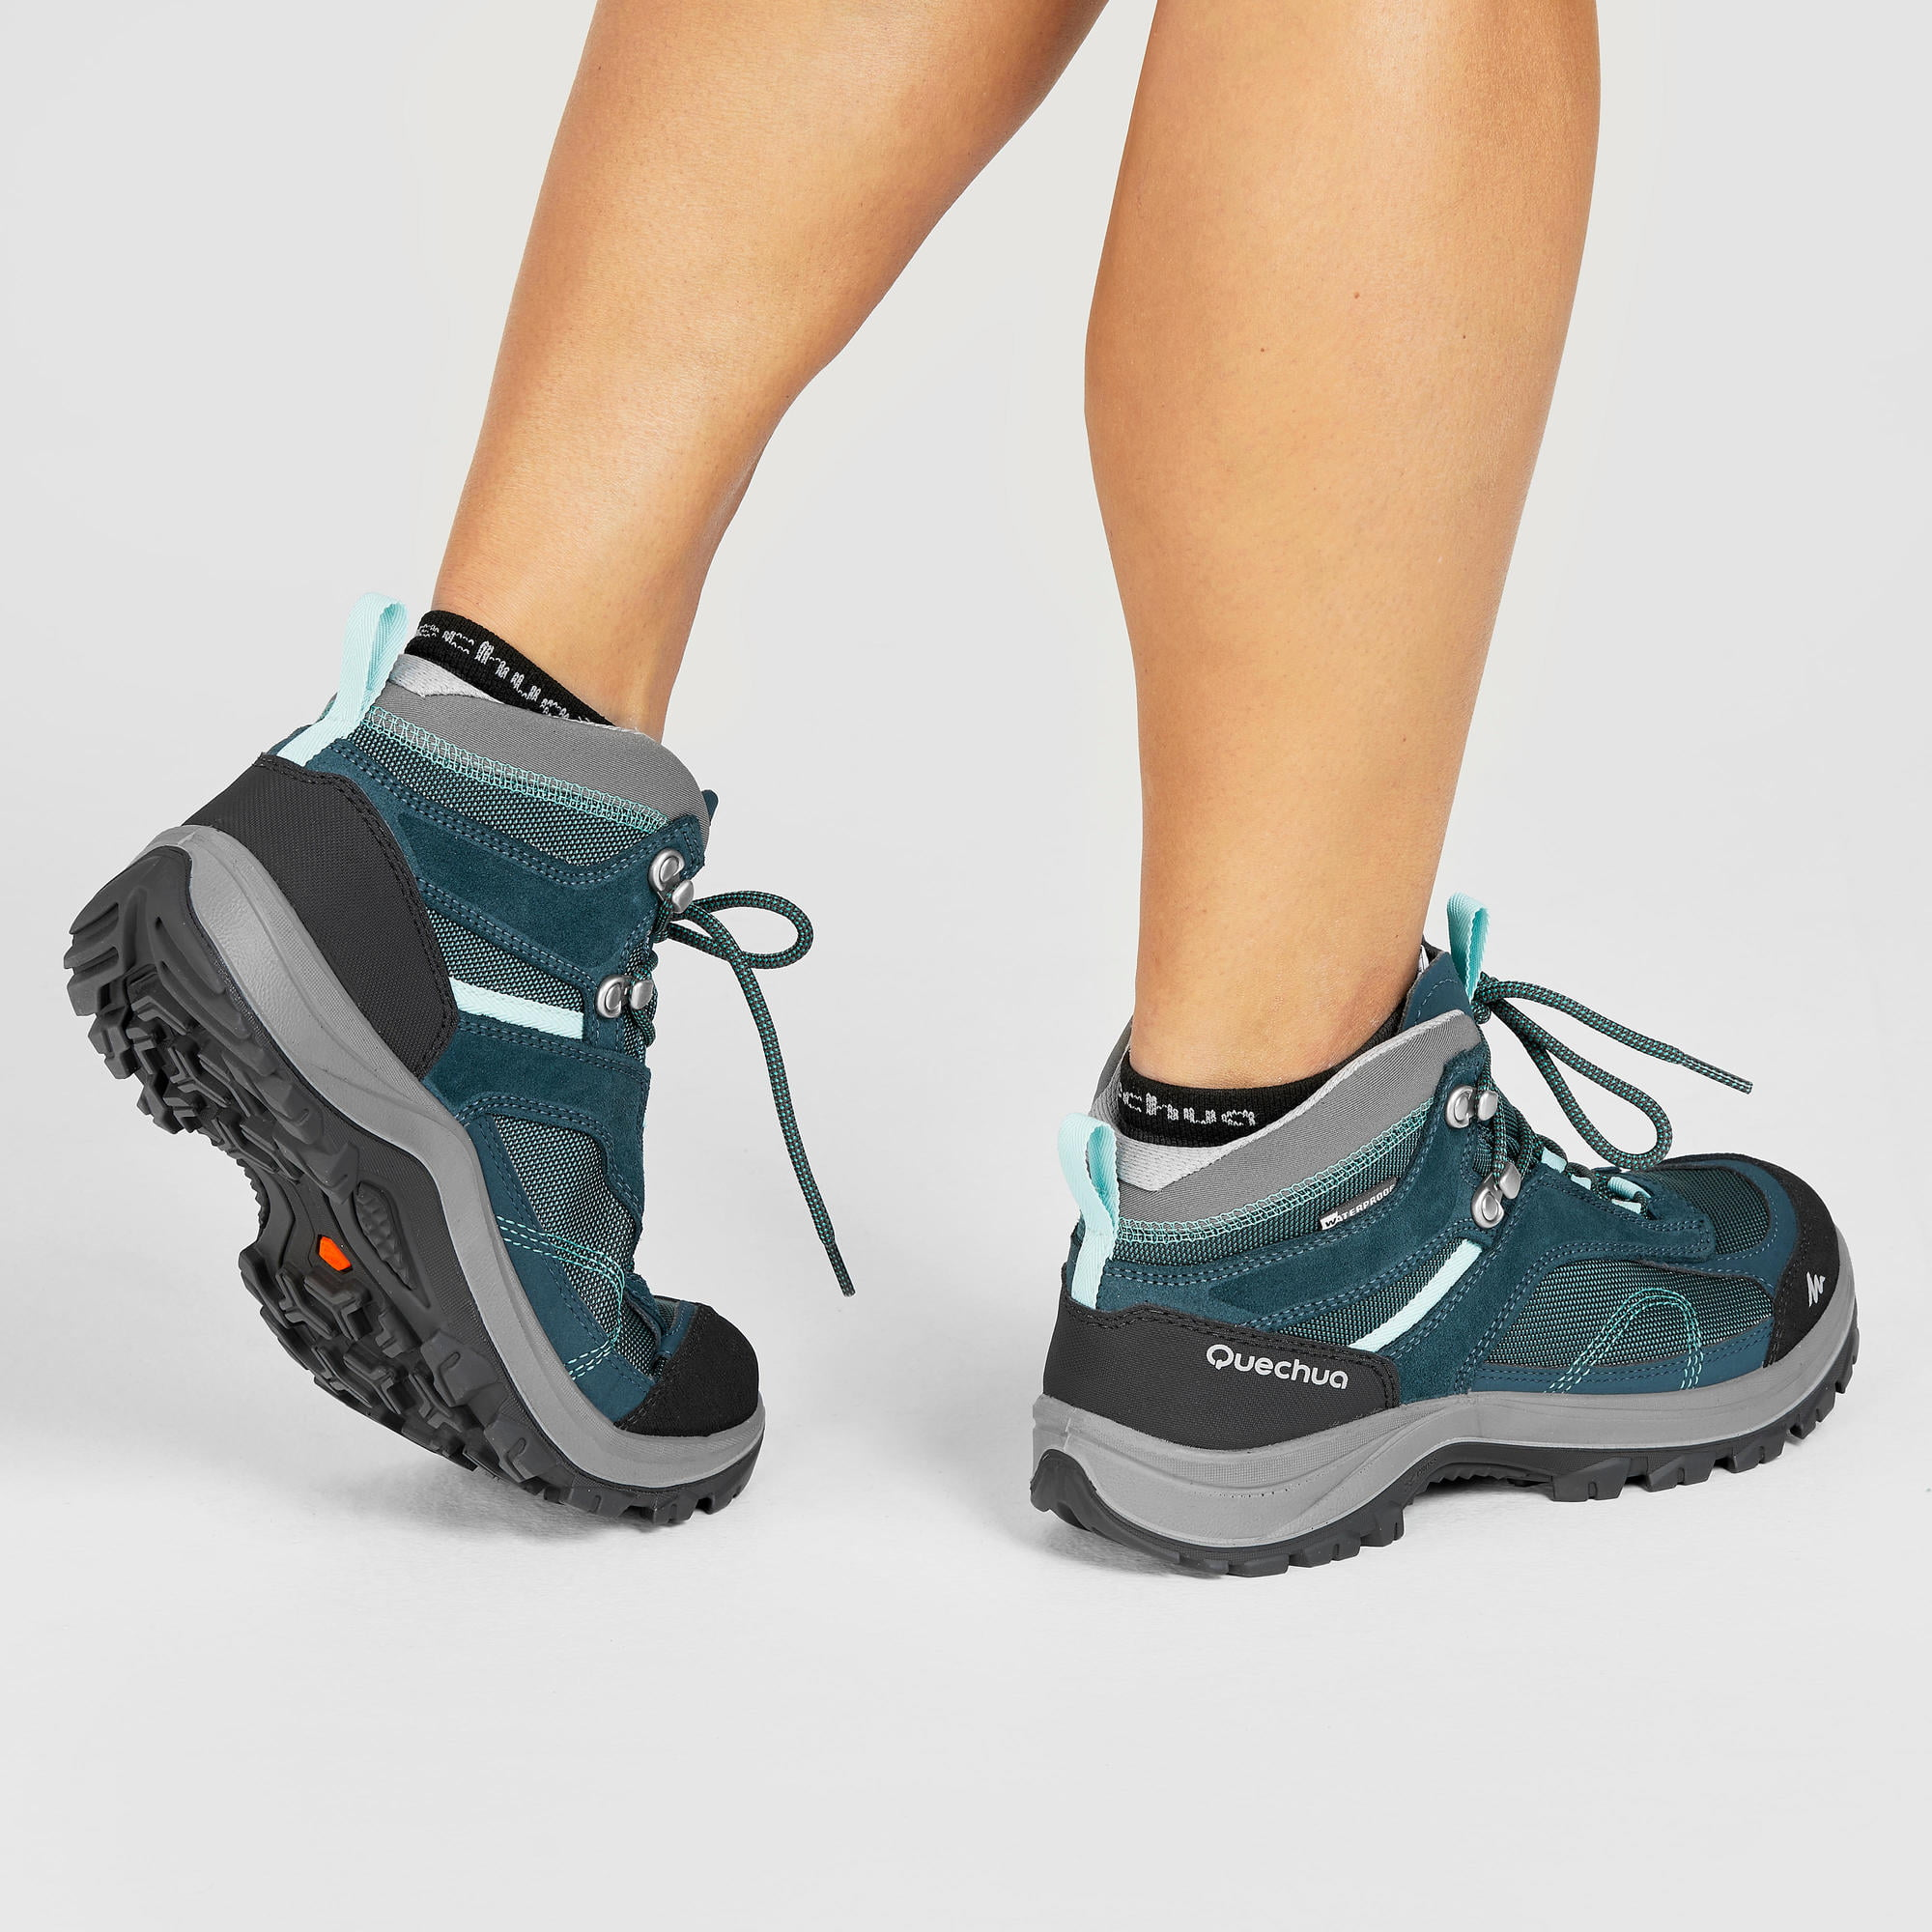 MH100 Mid Waterproof Hiking Shoes